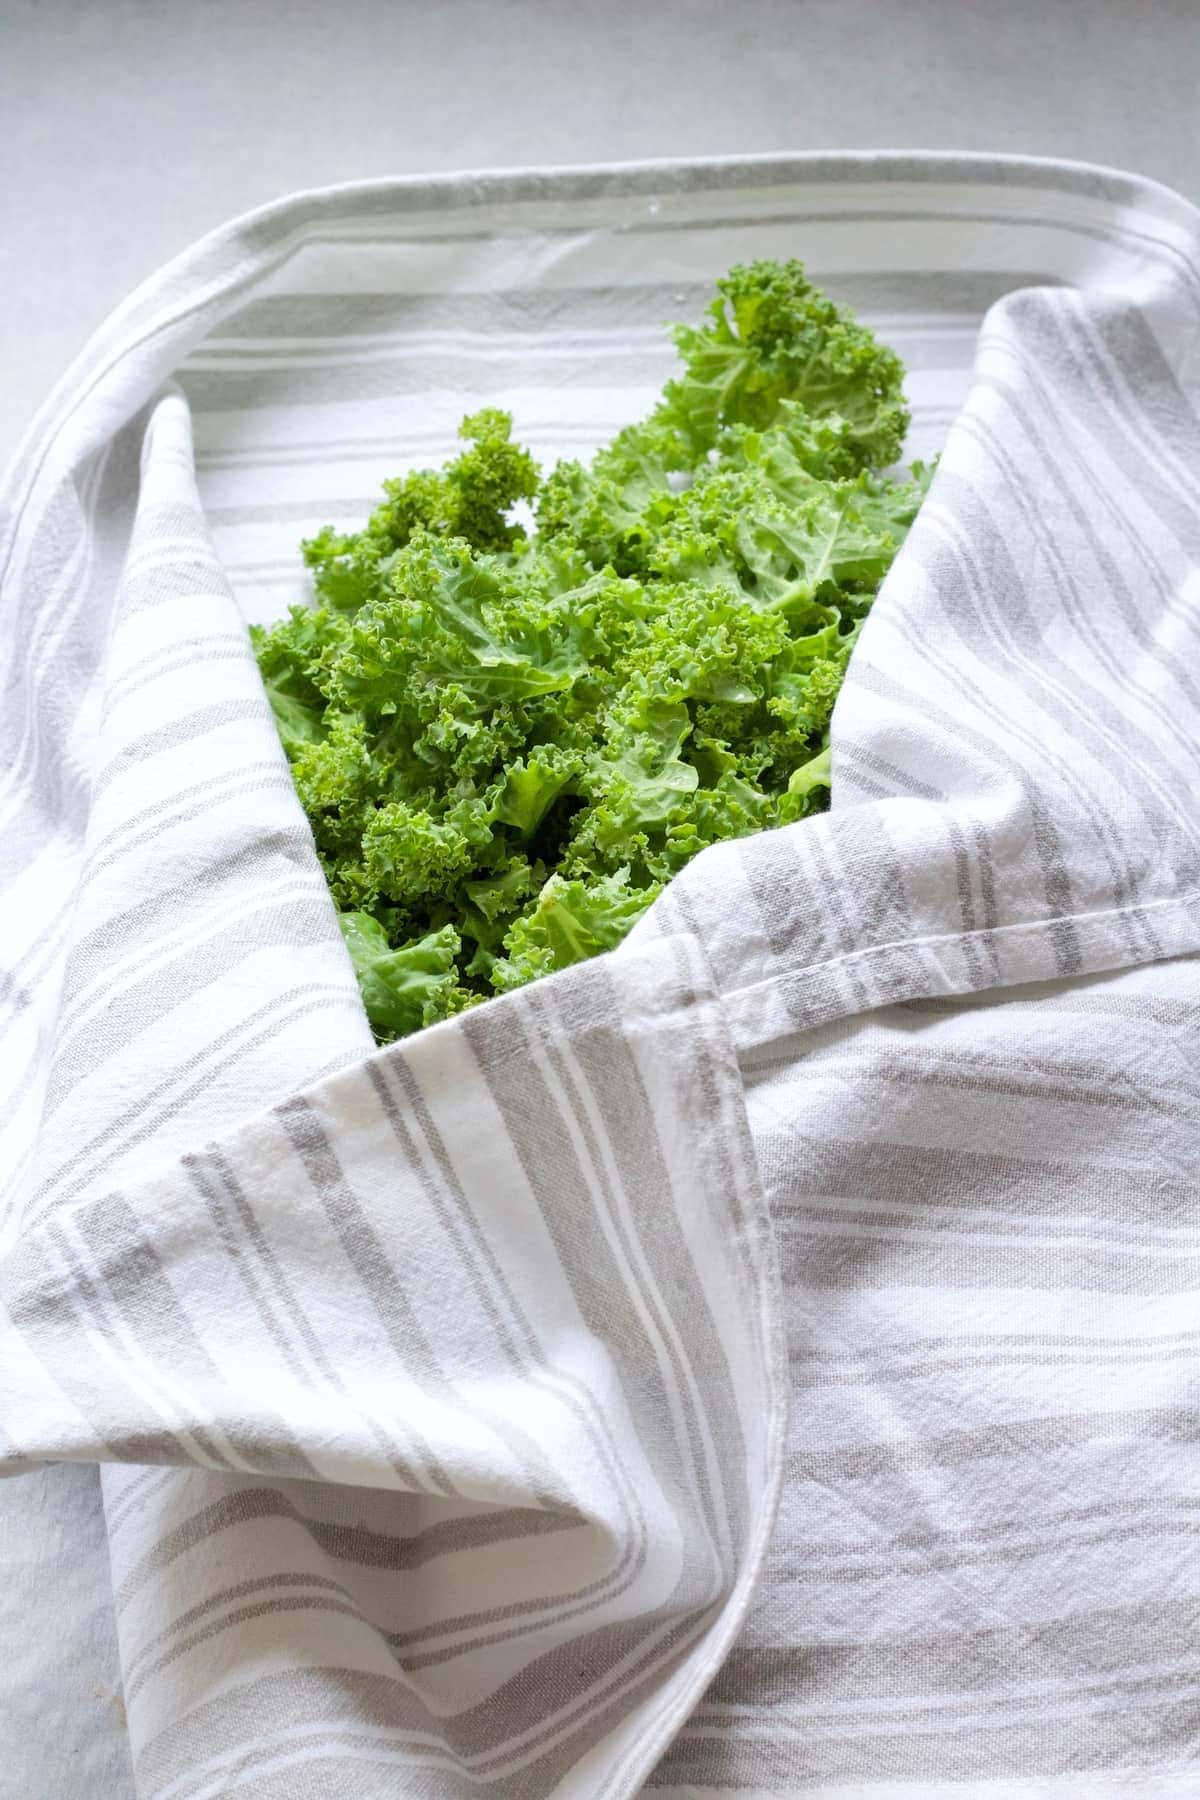 Washed greens wrapped in kitchen towel.